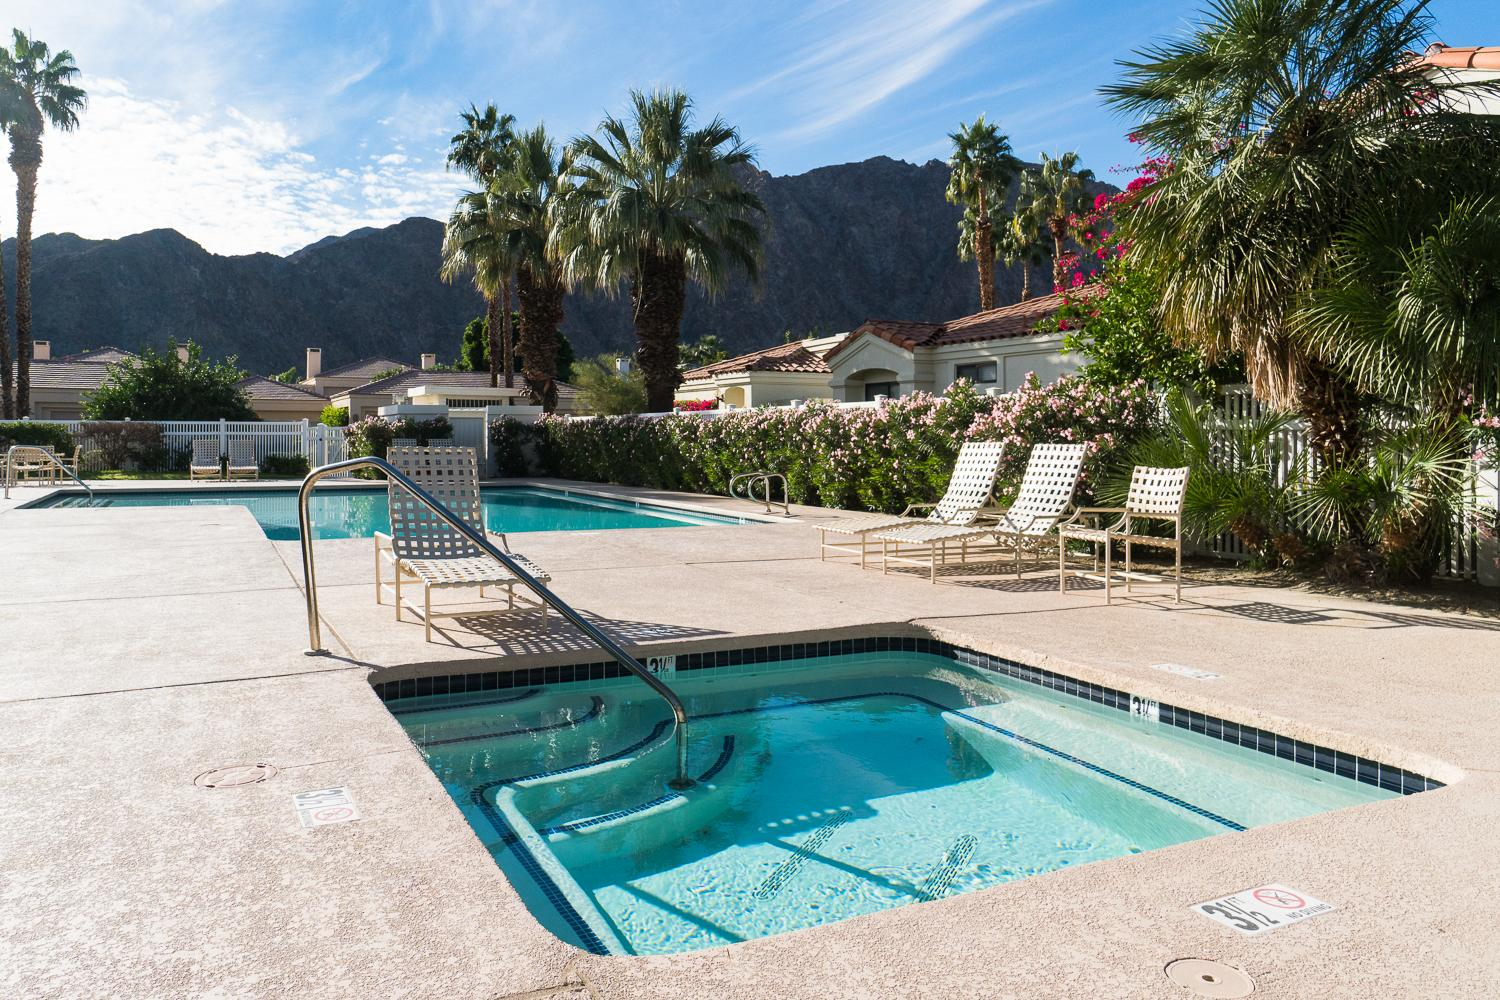 Find ultimate relaxation and enjoy the views of the Santa Rosa Mountains.